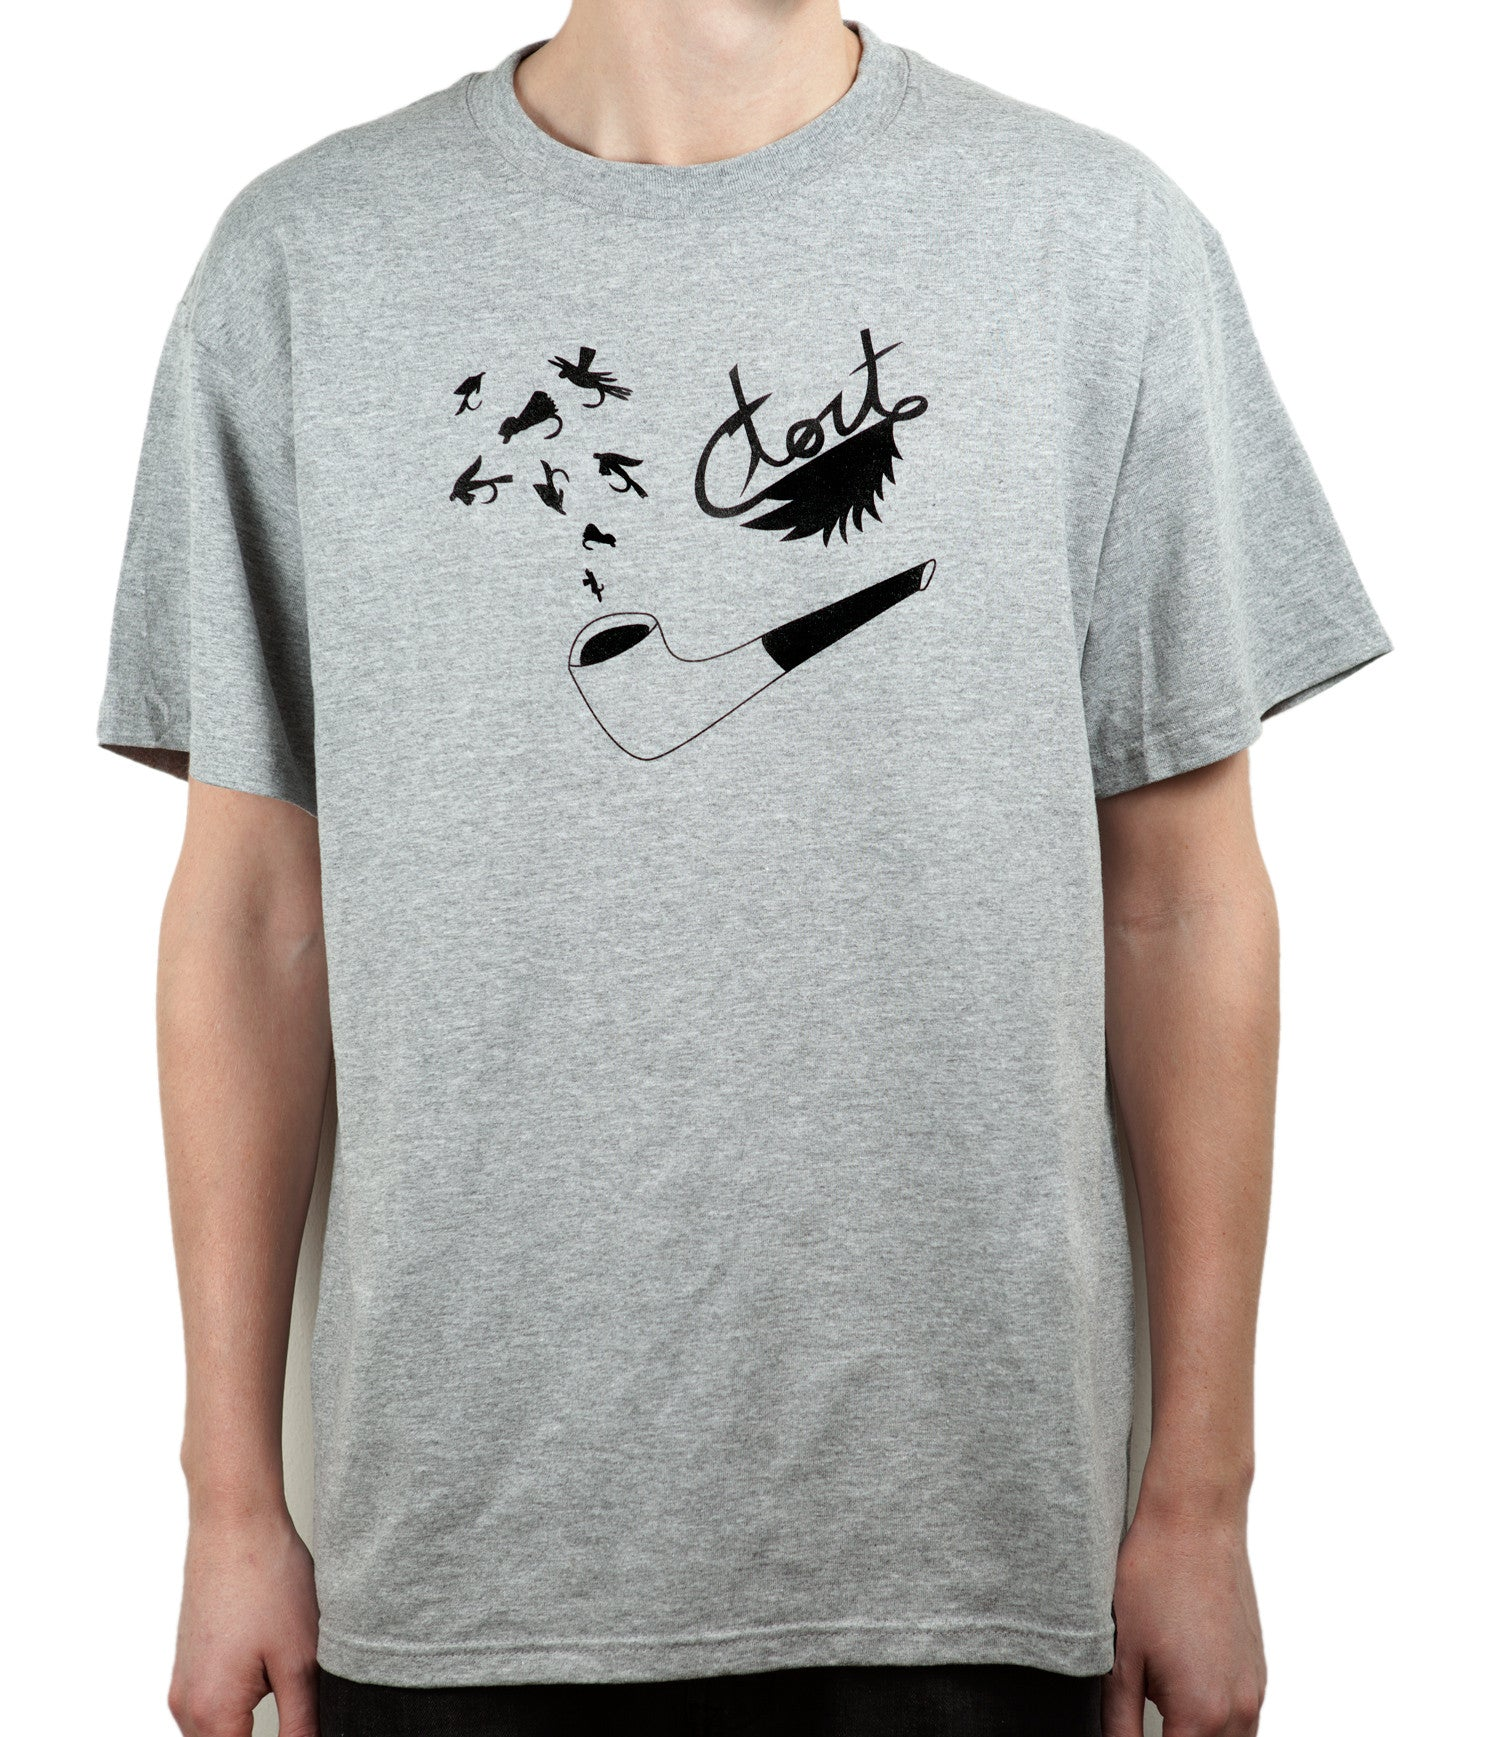 Limited Pipe t-shirt